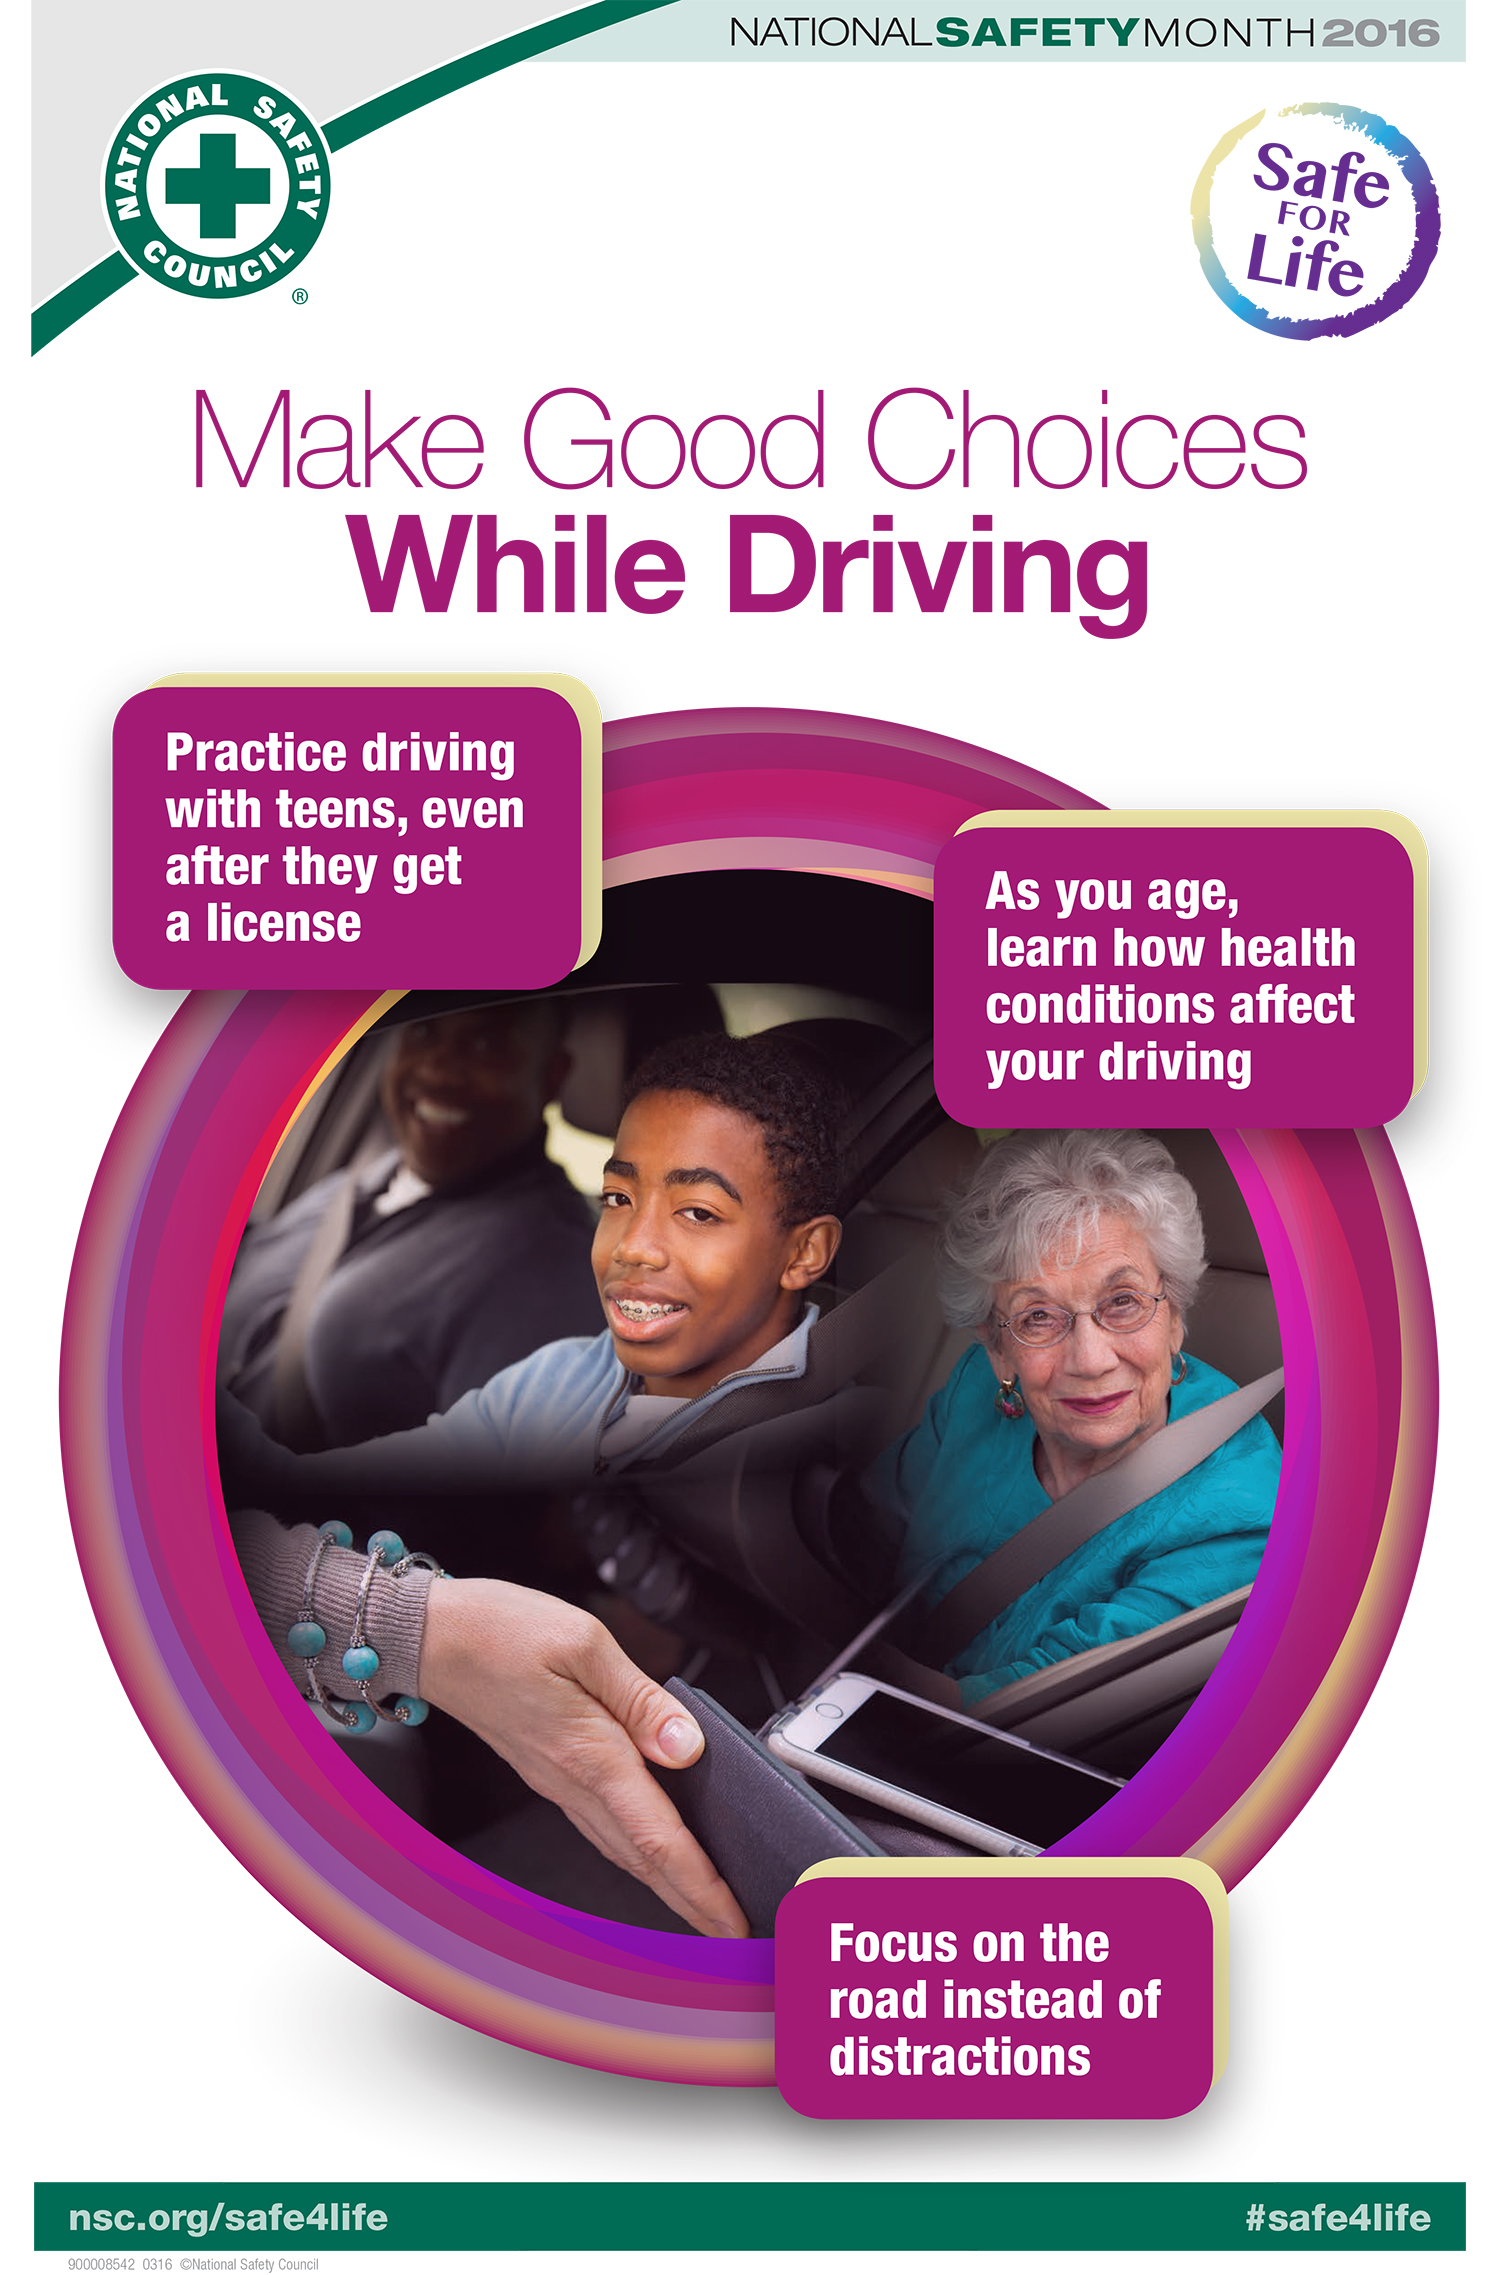 Make Good Choices While Driving  Practice driving with teens, even after they get a license As you age, learn how health conditions affect your driving Focus on road instead of distractions